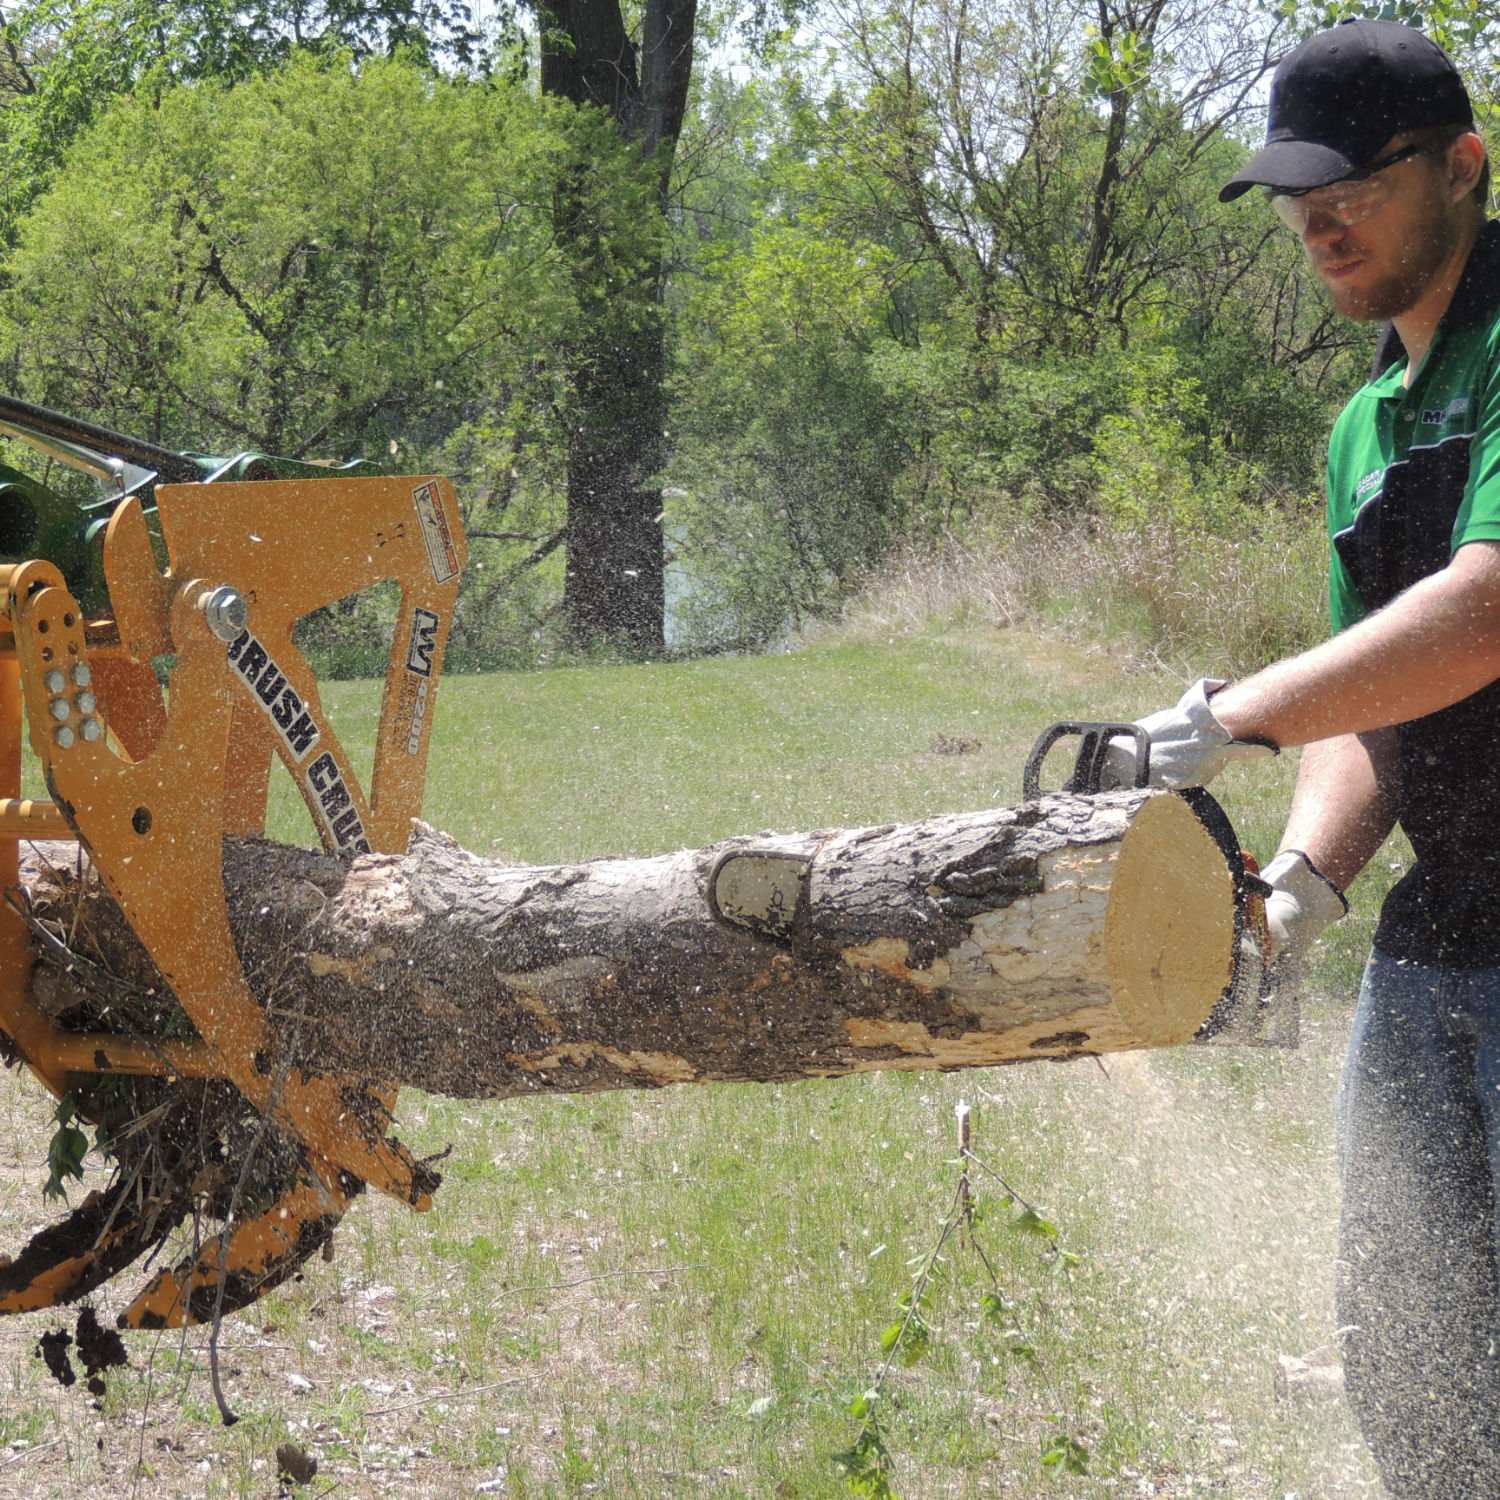 BC-4200 holds a log to be cut into firewood.